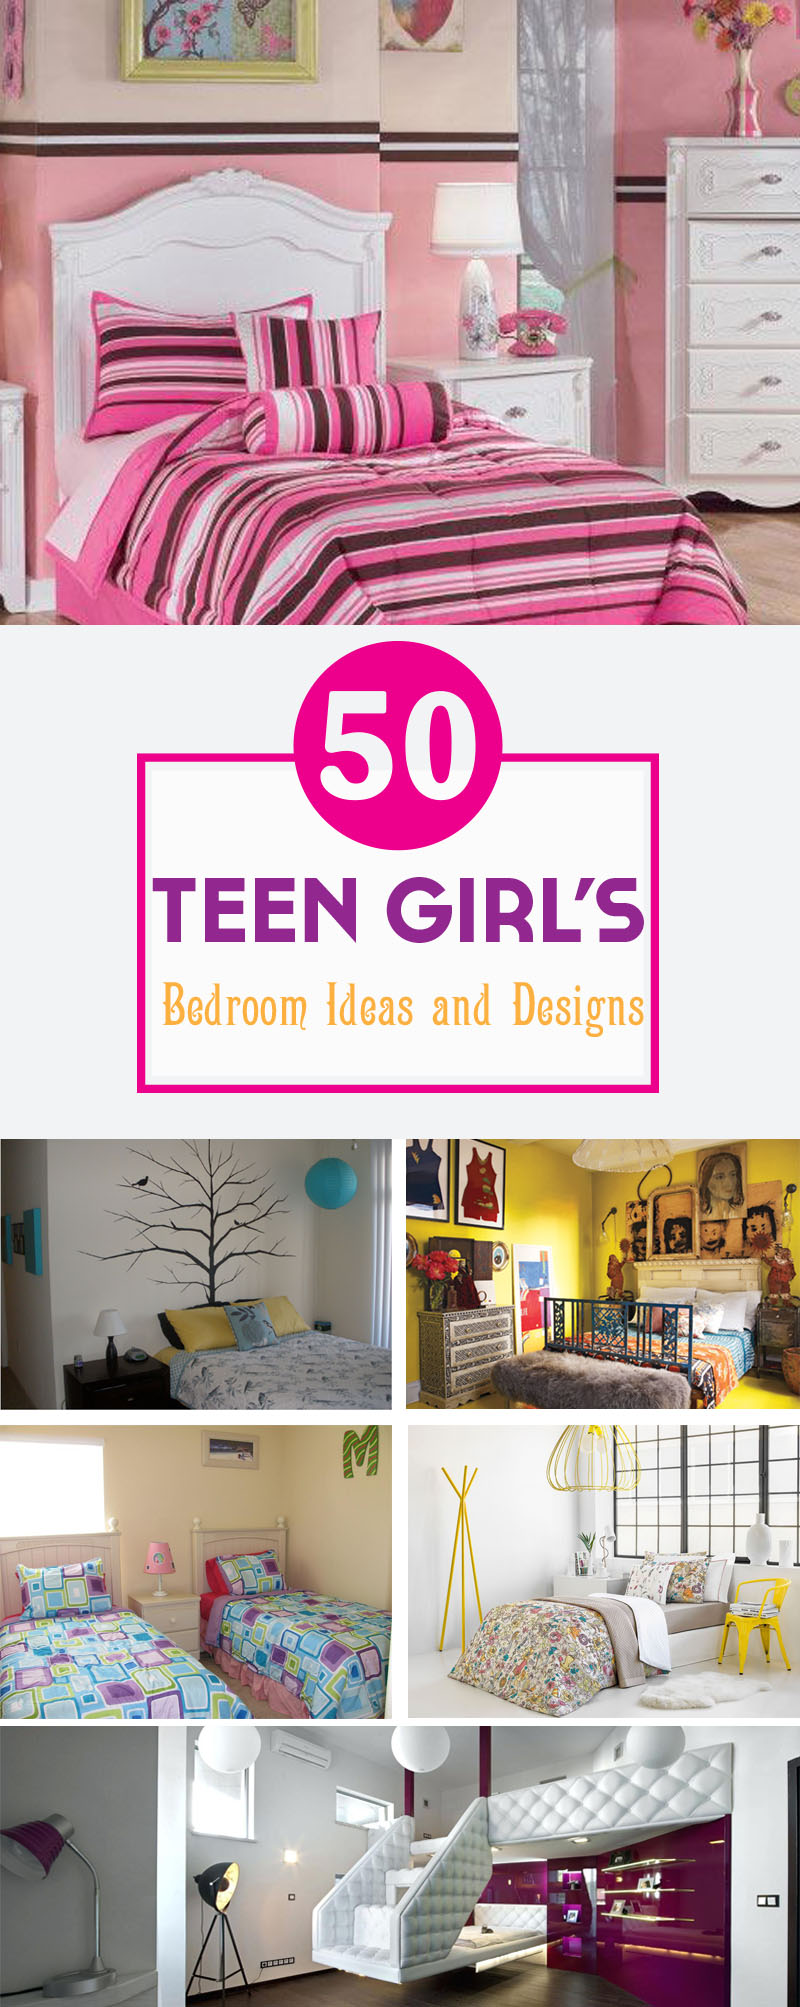 Best Teen Girlu0027s Bedroom Ideas And Designs